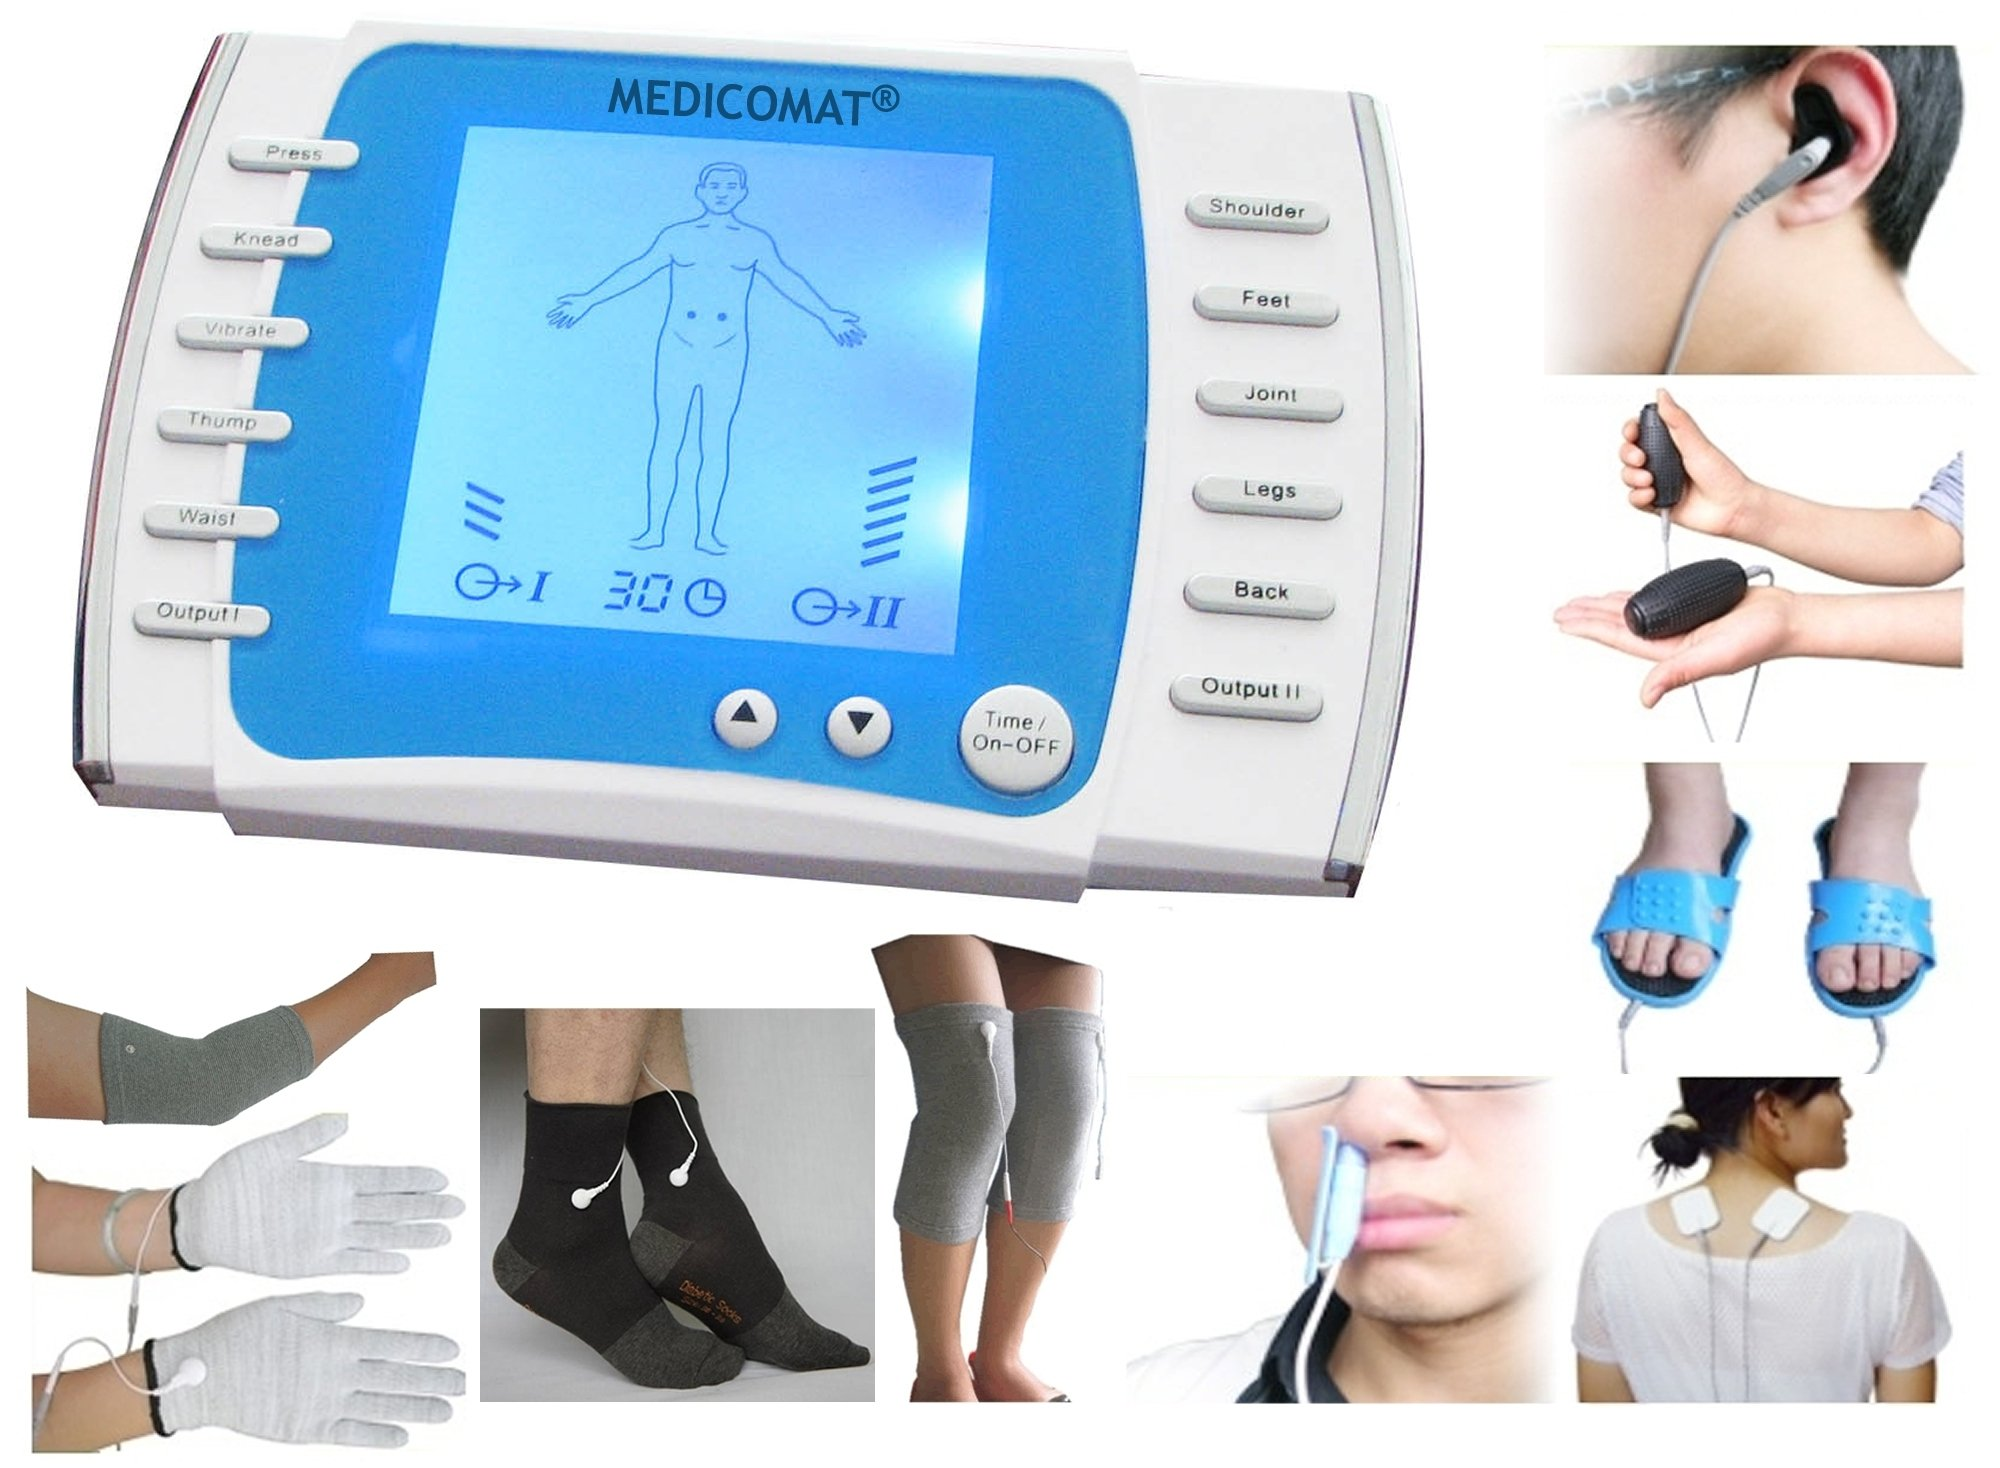 Knee Pain Relief Device Medicomat Pain Therapy